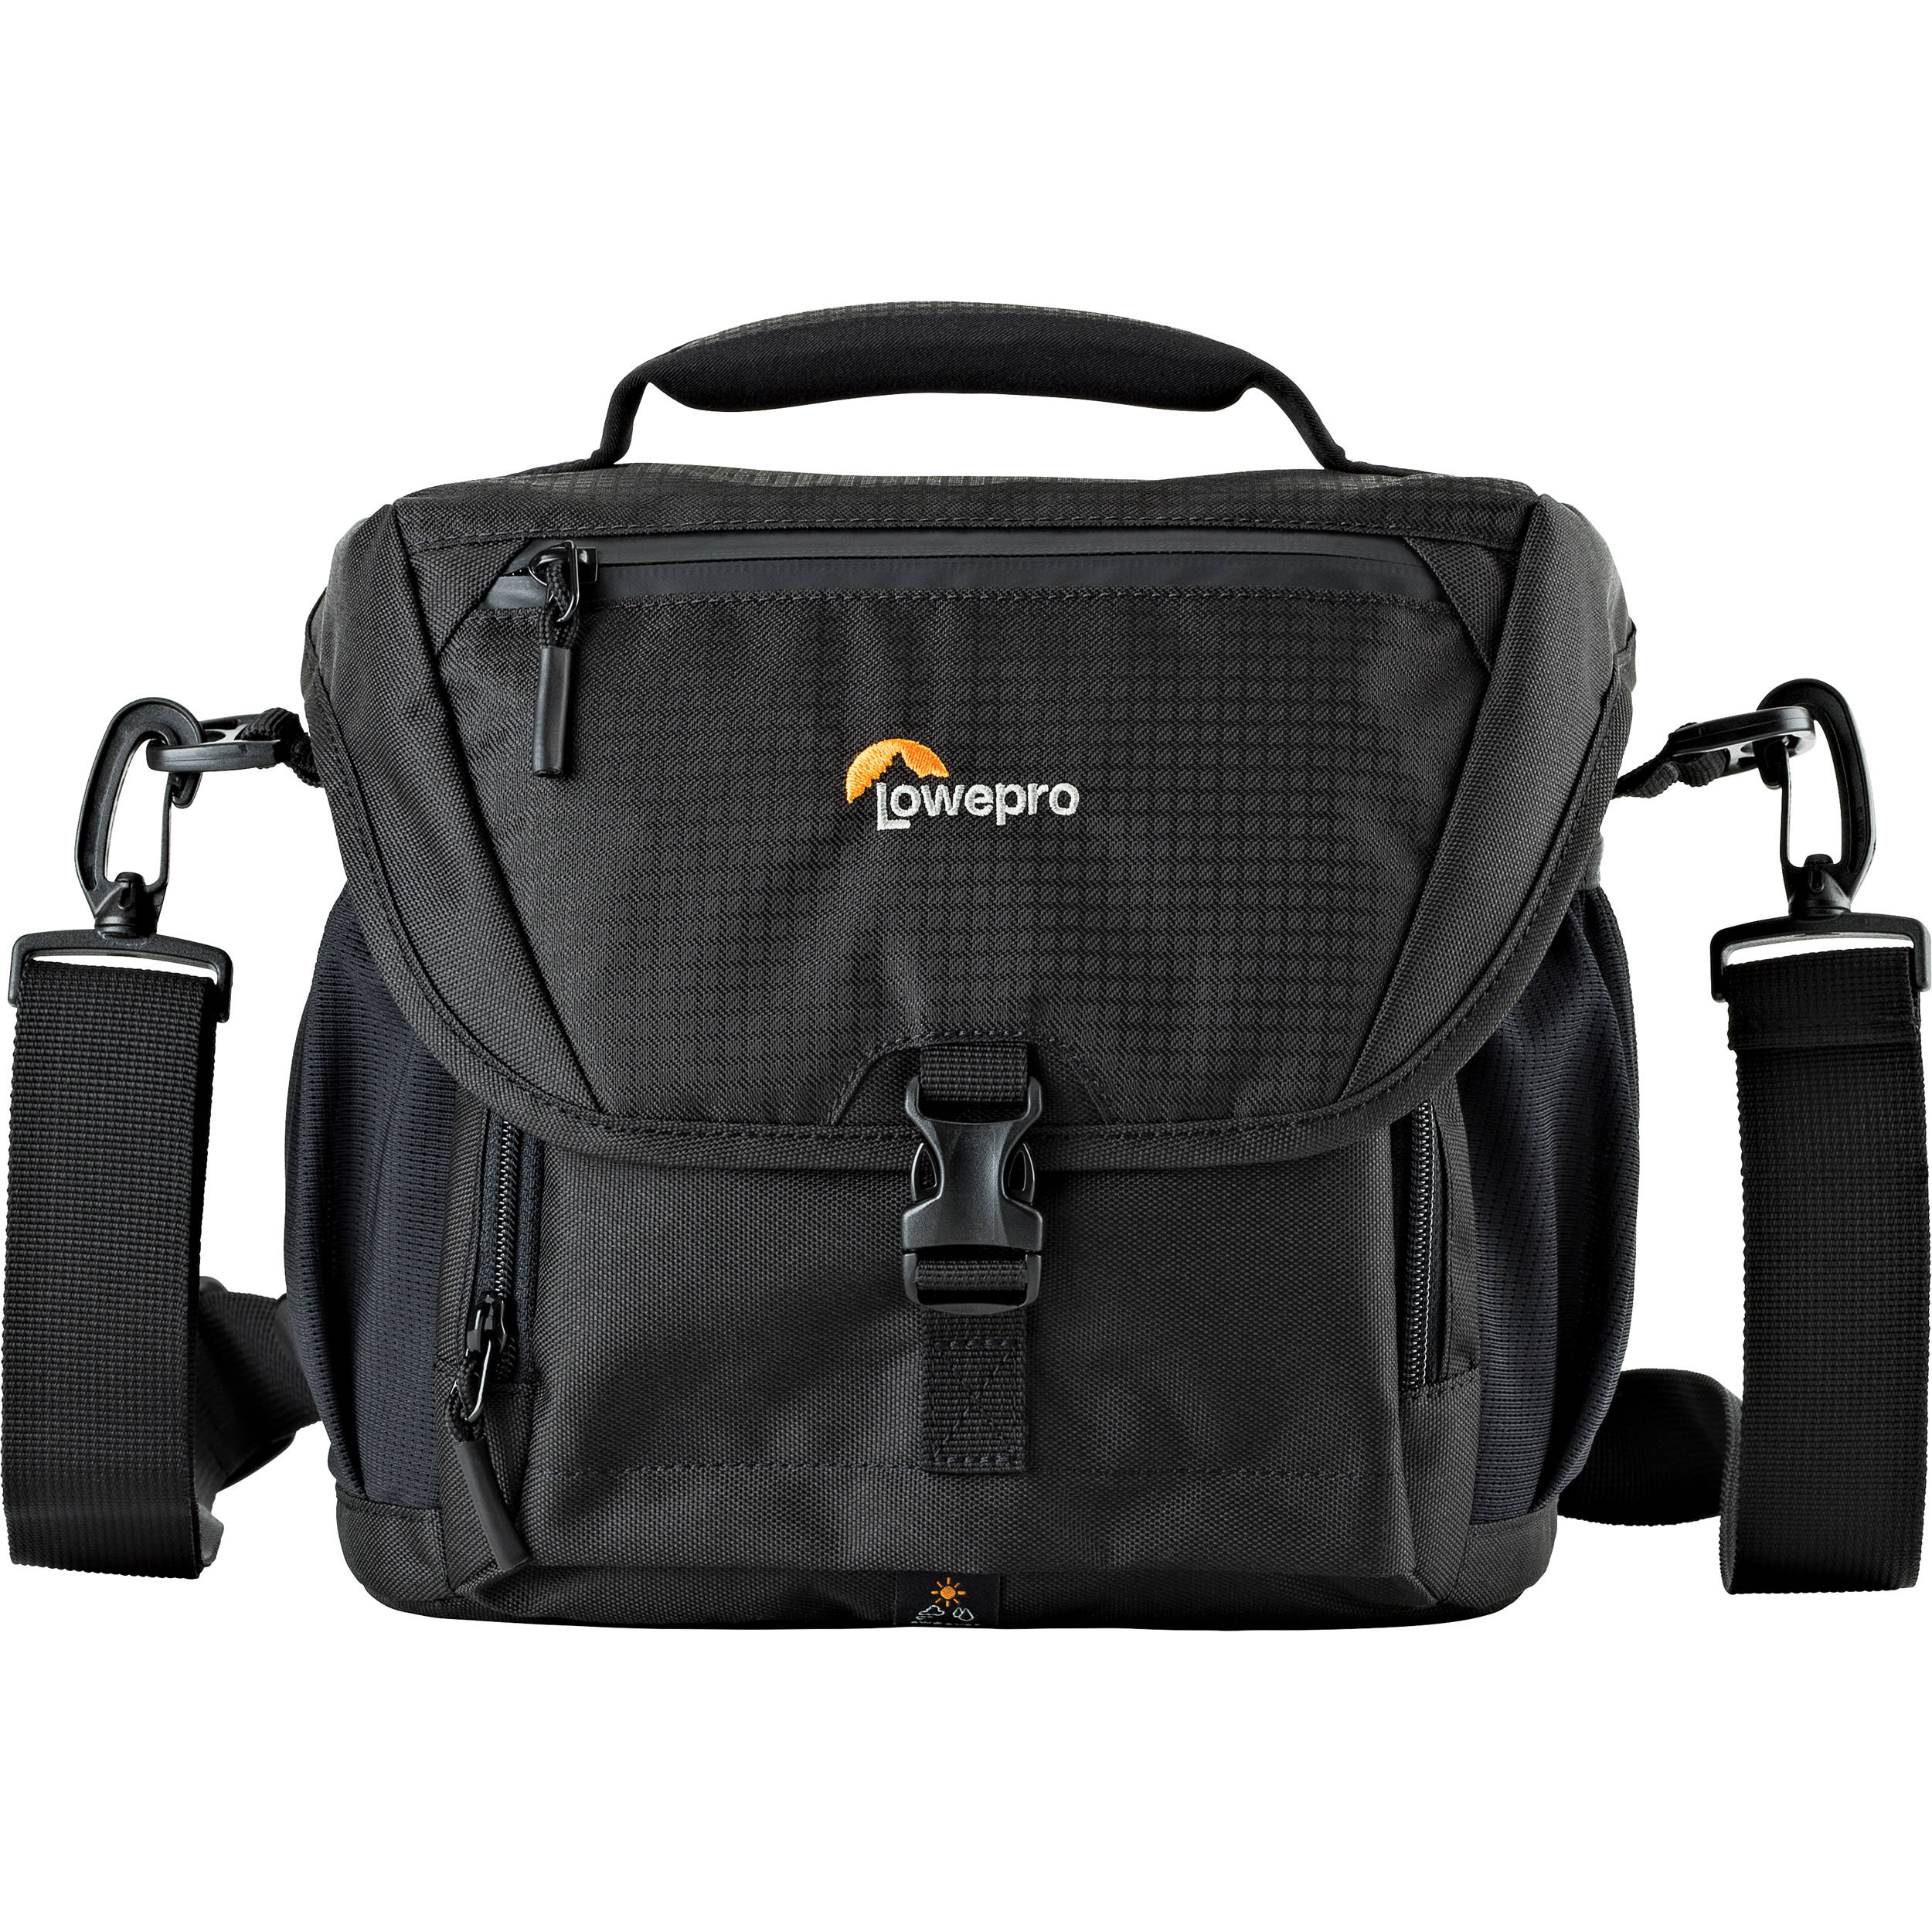 Lowepro Nova 170 Aw Ii Camera Bag Black